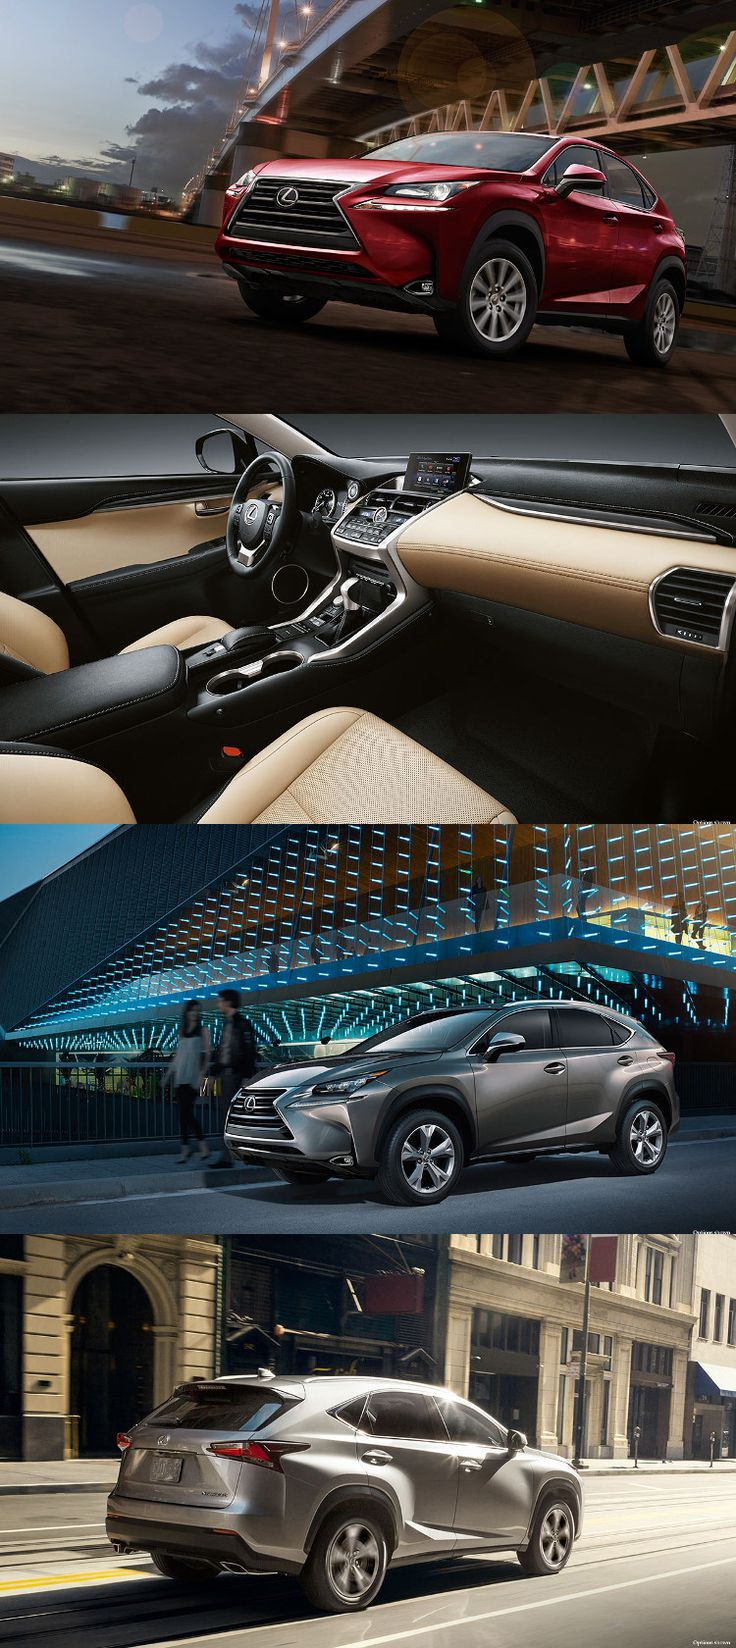 The 2017 lexus nx crossover delivers entry luxury and style along with plenty of features